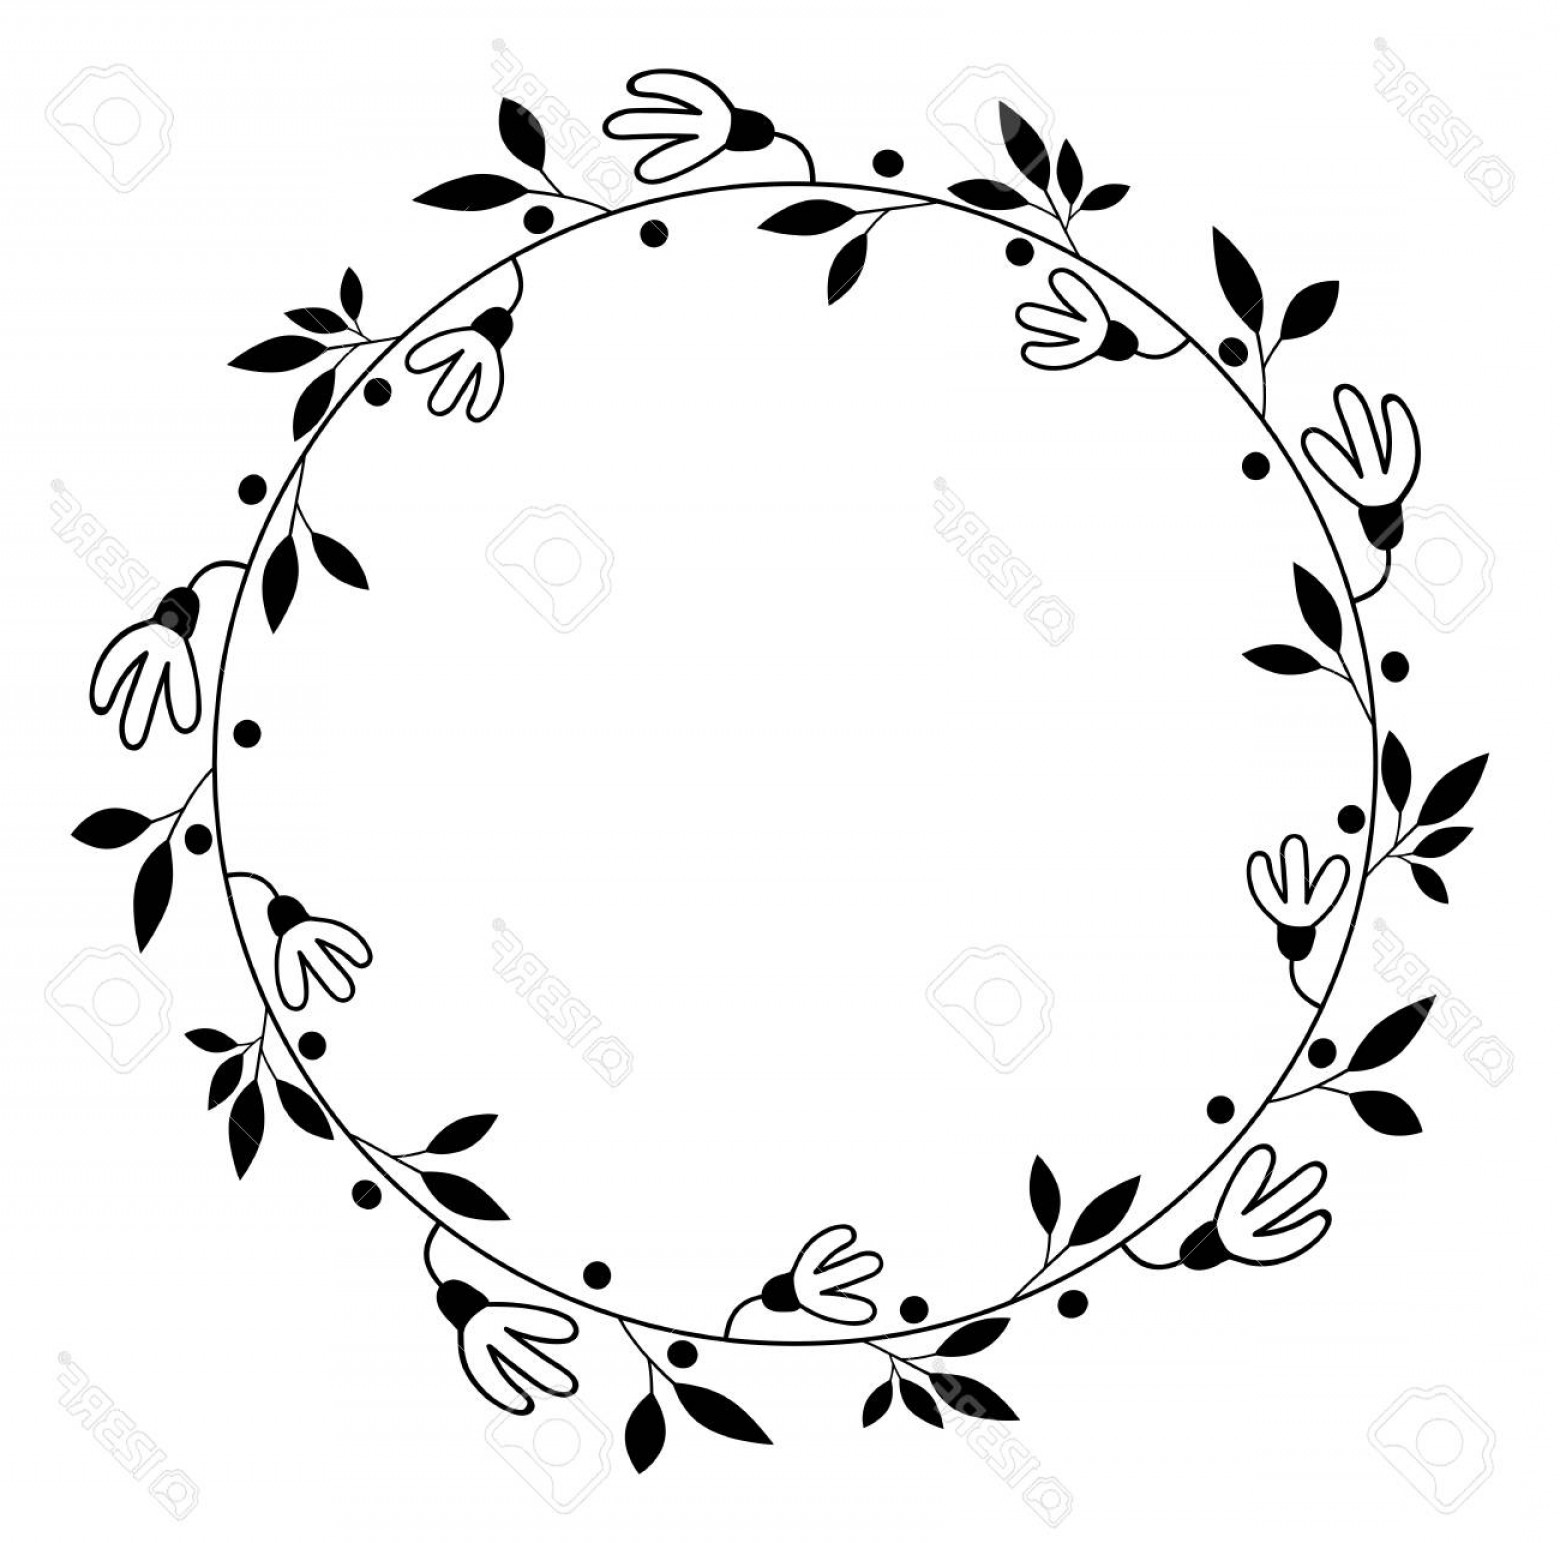 Vector Flower Wreaths In Black: Photostock Vector Round Vector Floral Wreath Black Flower Border For Wedding Invitations And Graphic Design